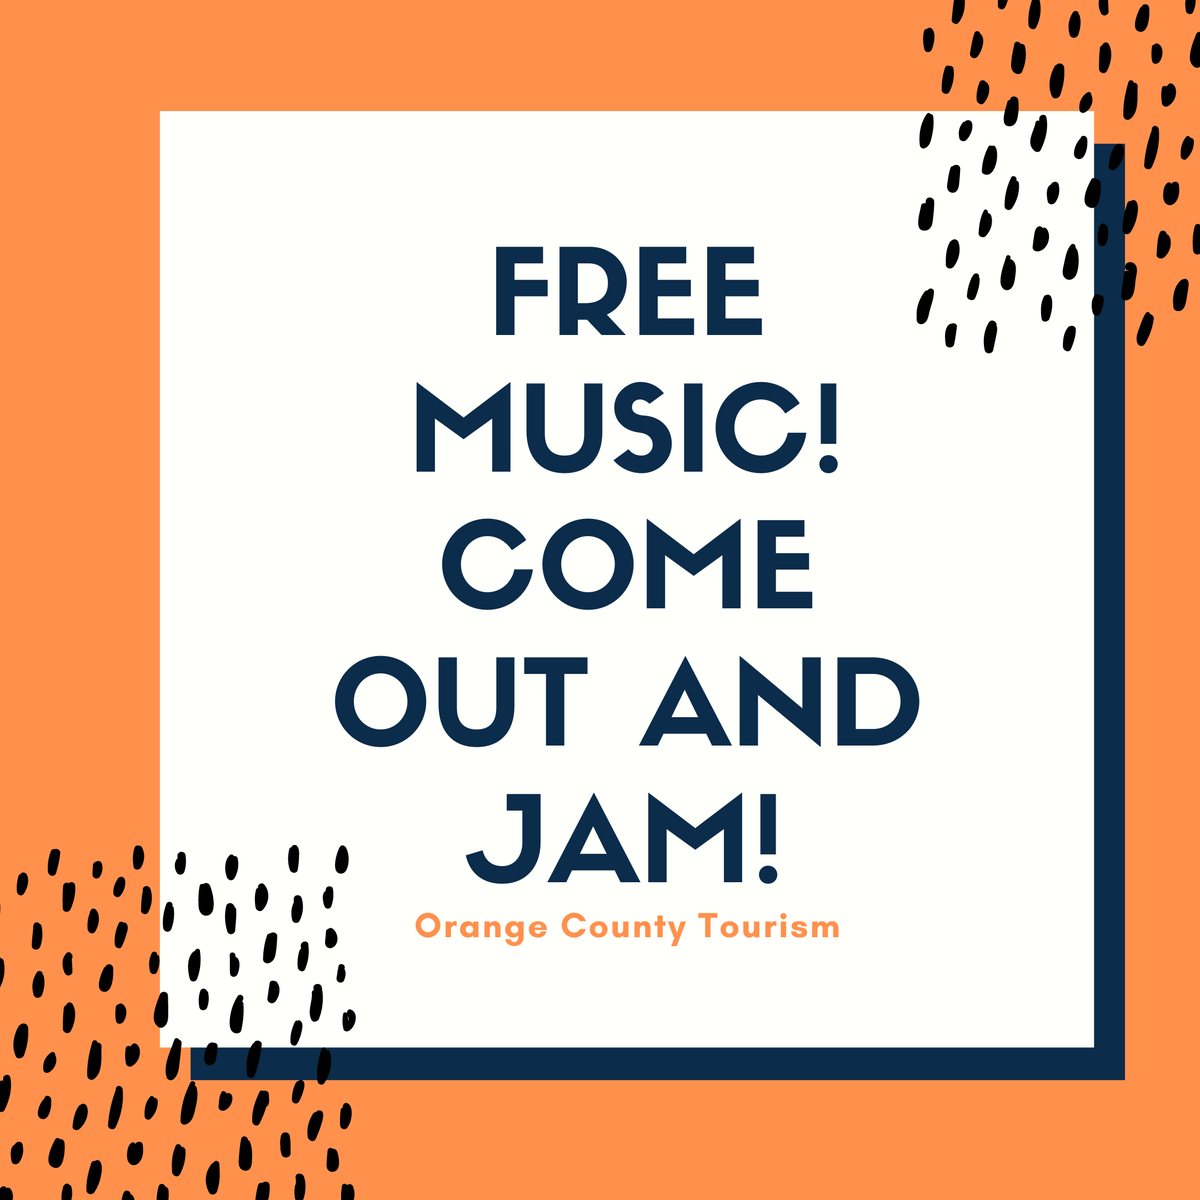 Tonight get down and funky with some free music in Cornwall-on-Hudson! Tuesday tunes, August summer nights, and good times. For more info visit: